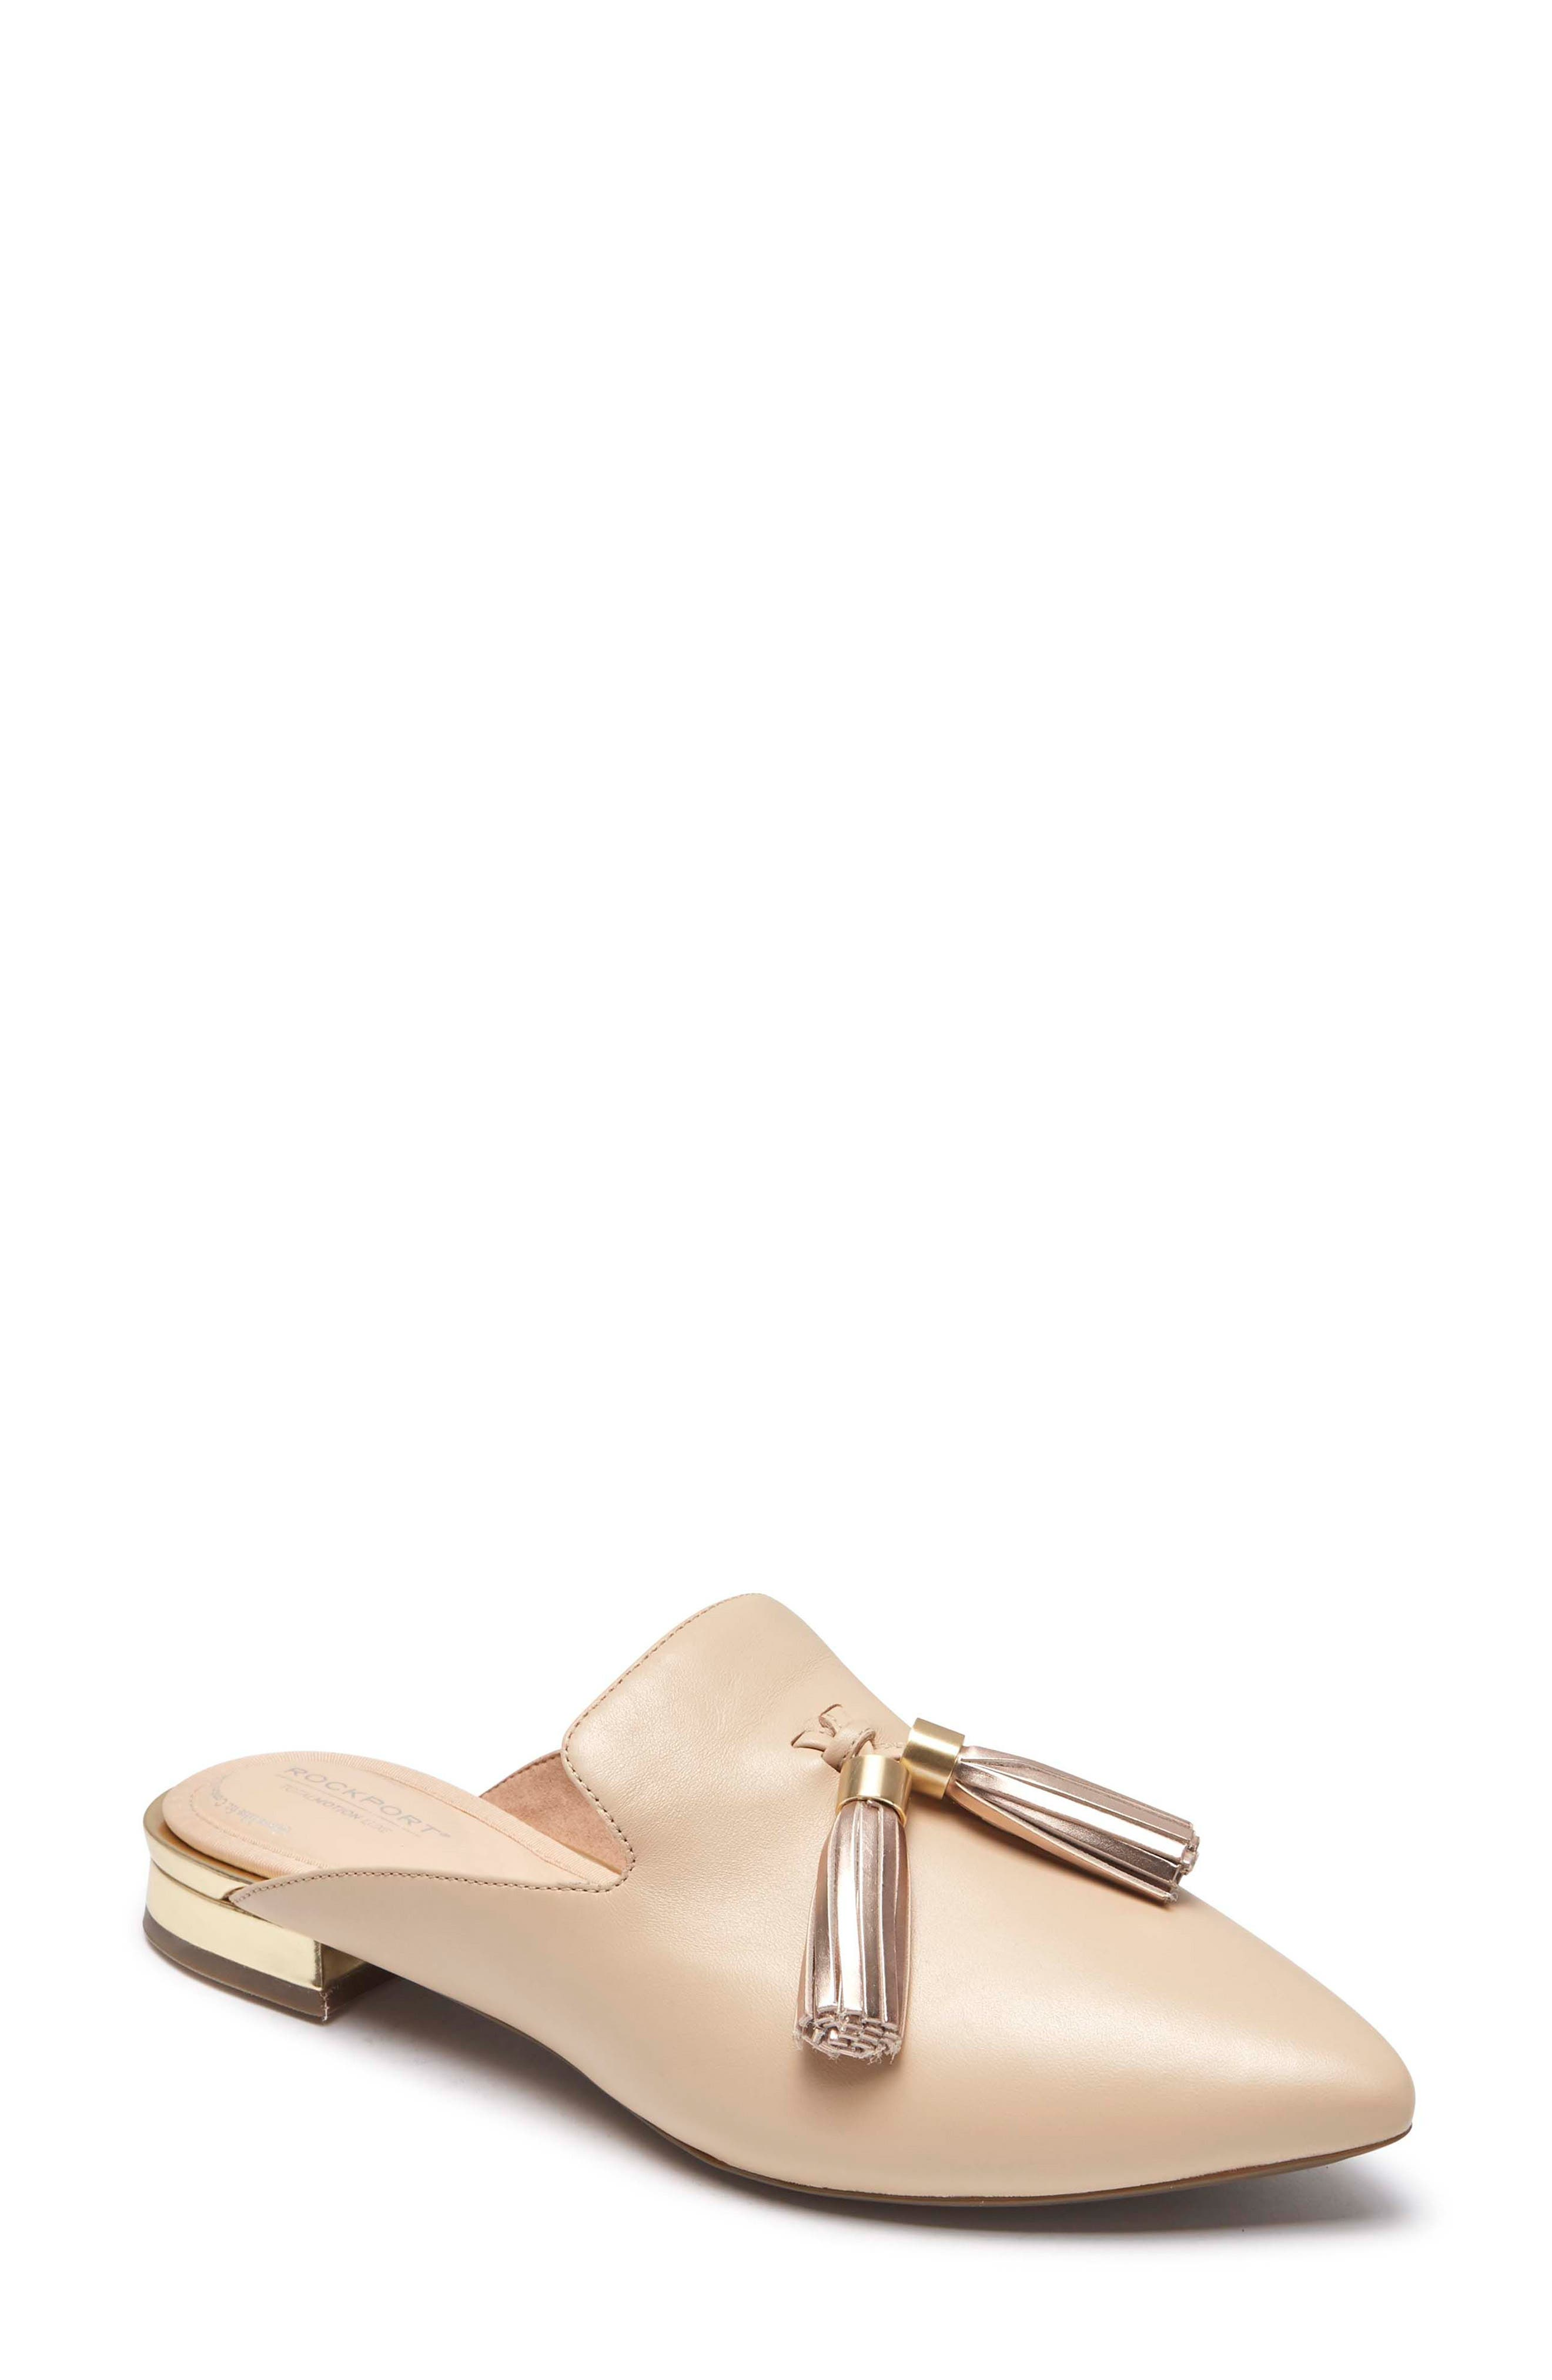 Total Motion Zuly Tassel Mule,                         Main,                         color, Latte Leather